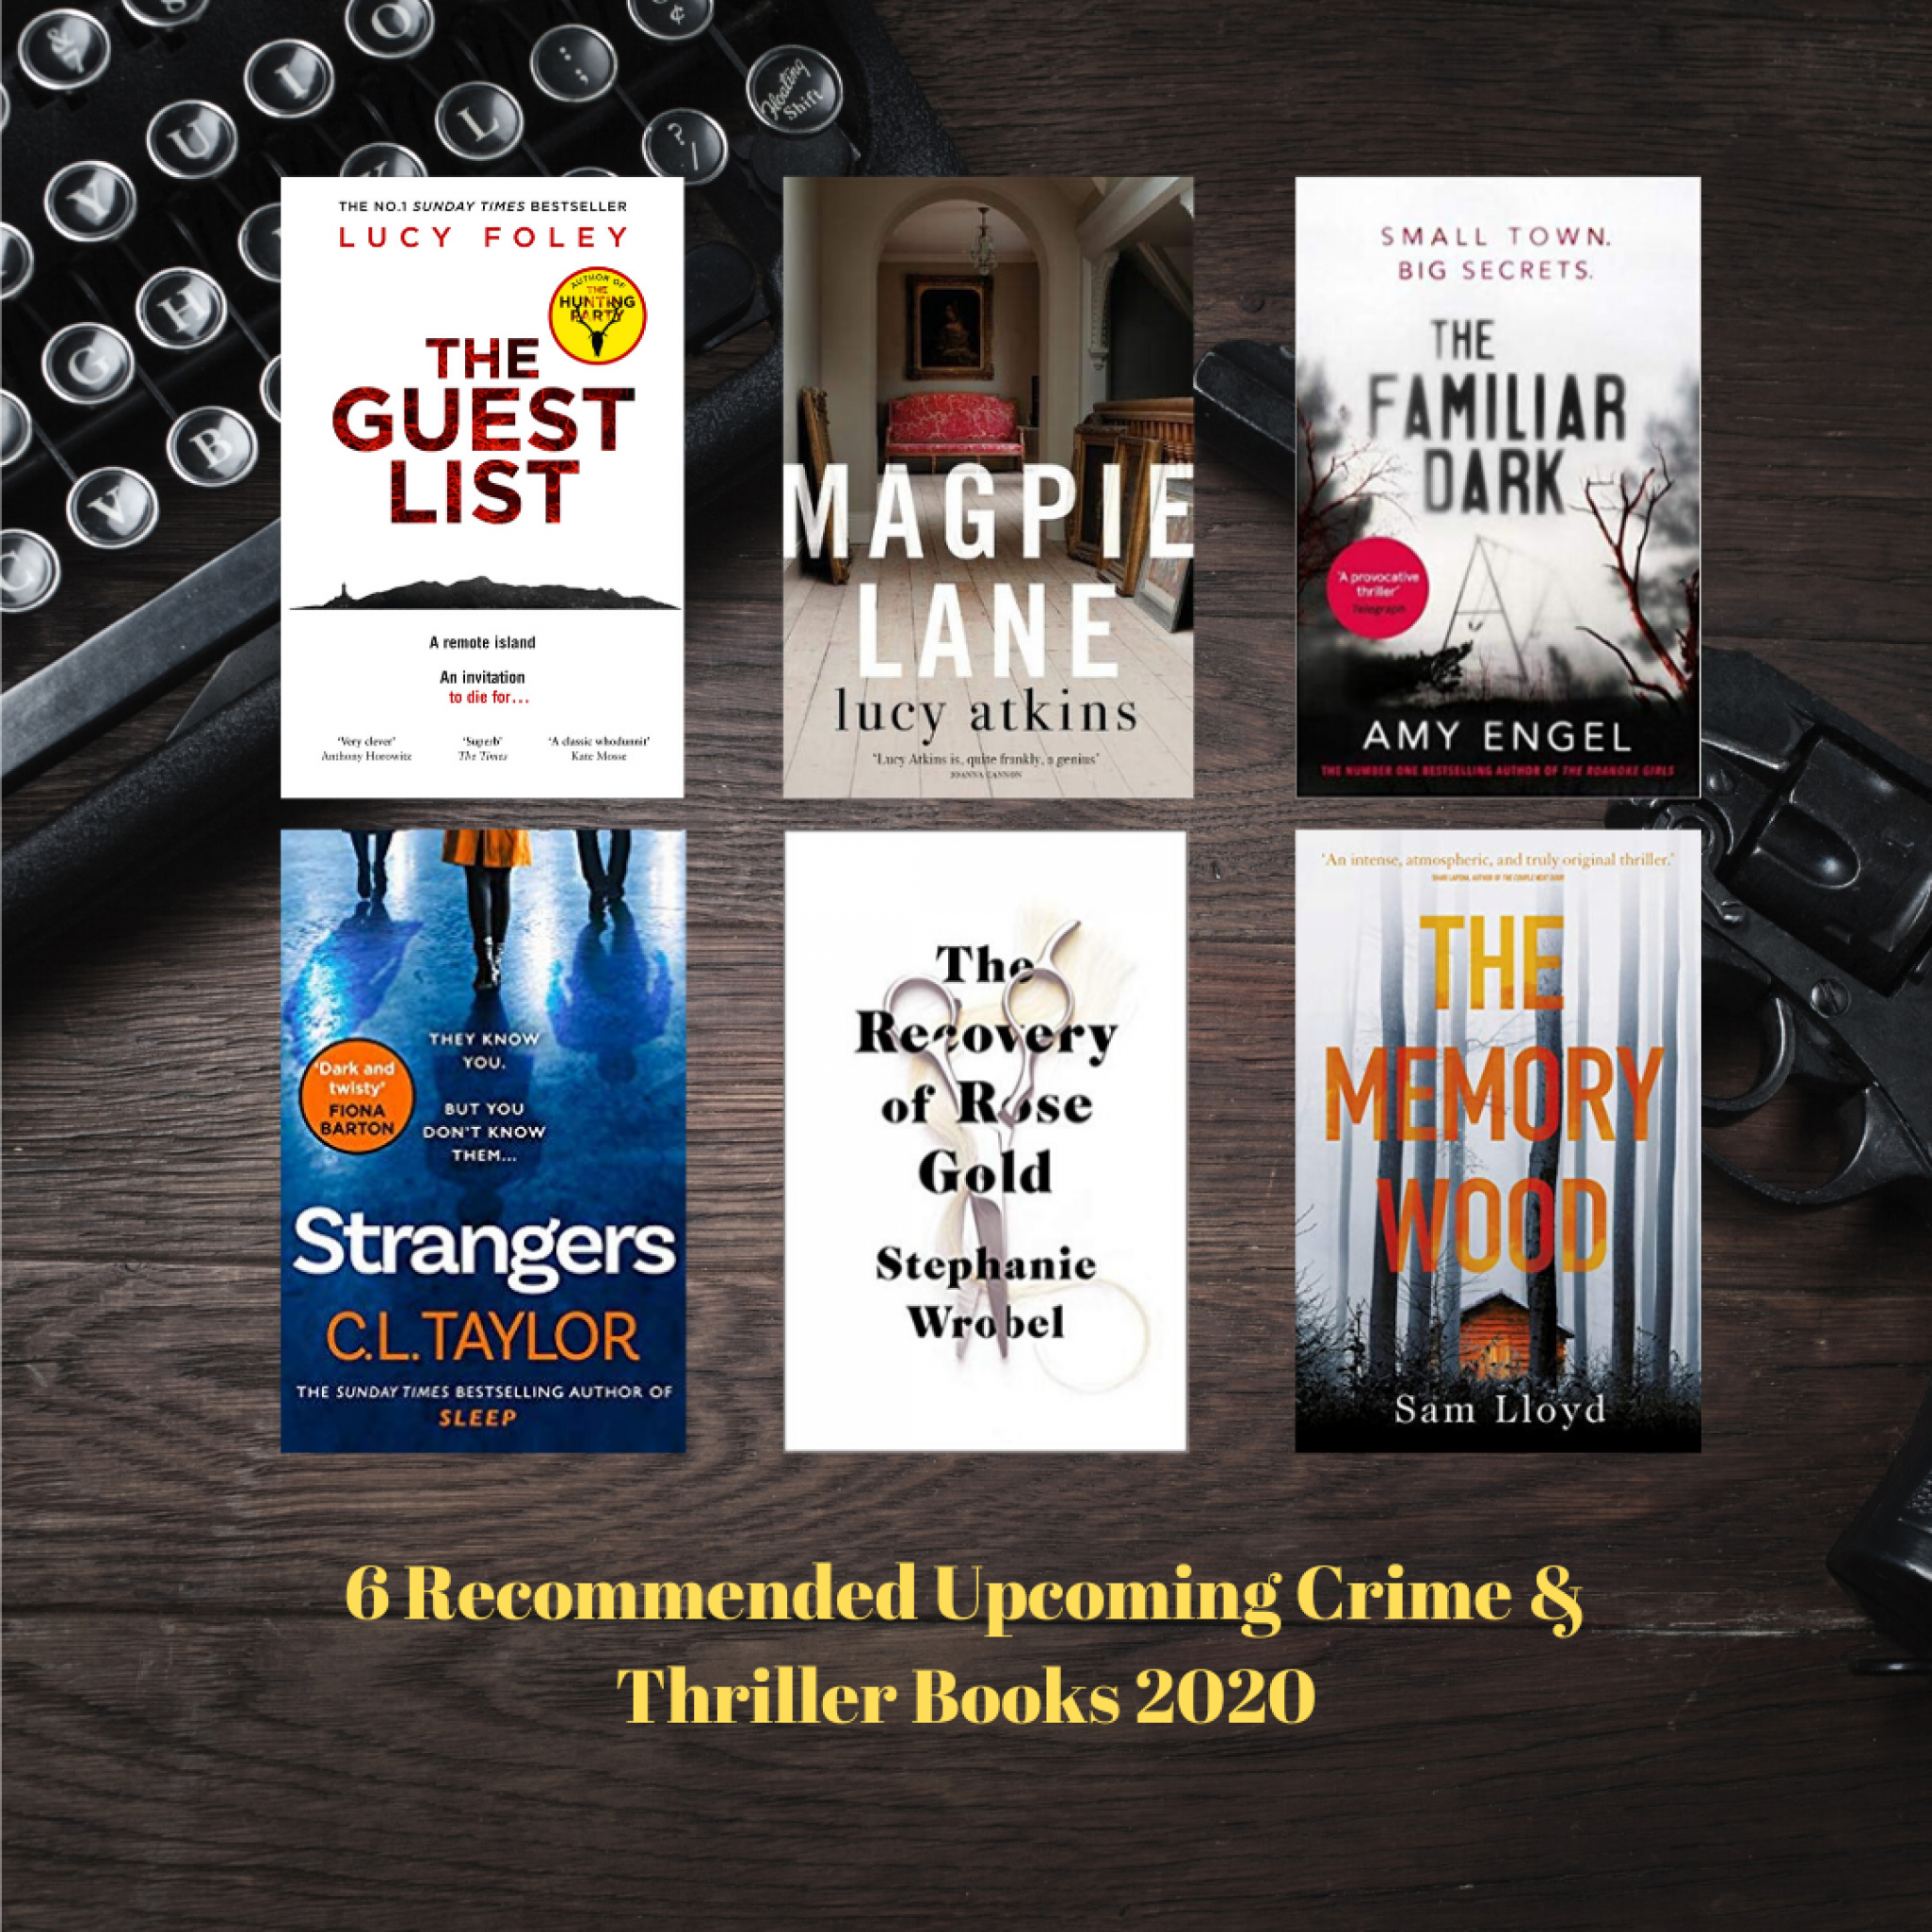 6 Recommended Upcoming Crime & Thriller Books 2020